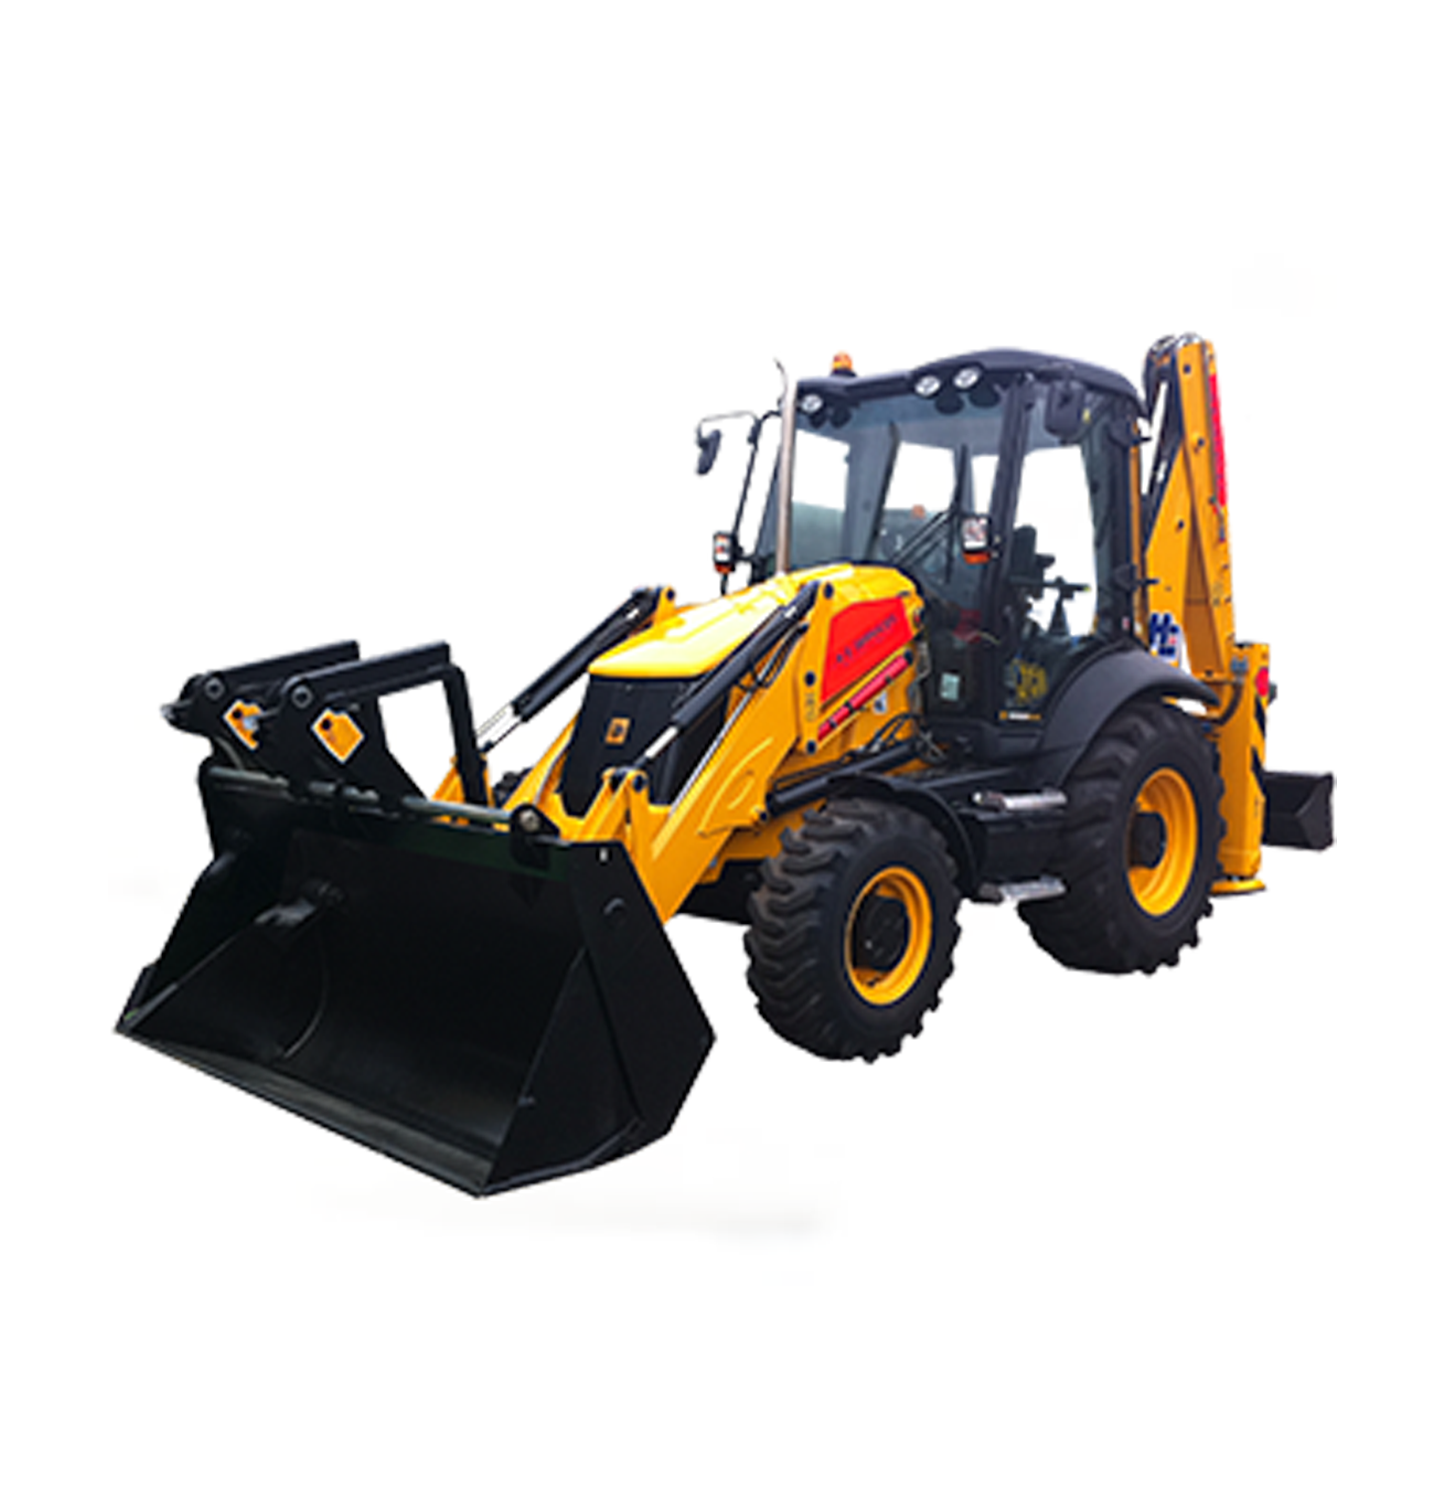 Backhoe Loaders JCB 3CX H.E. Services